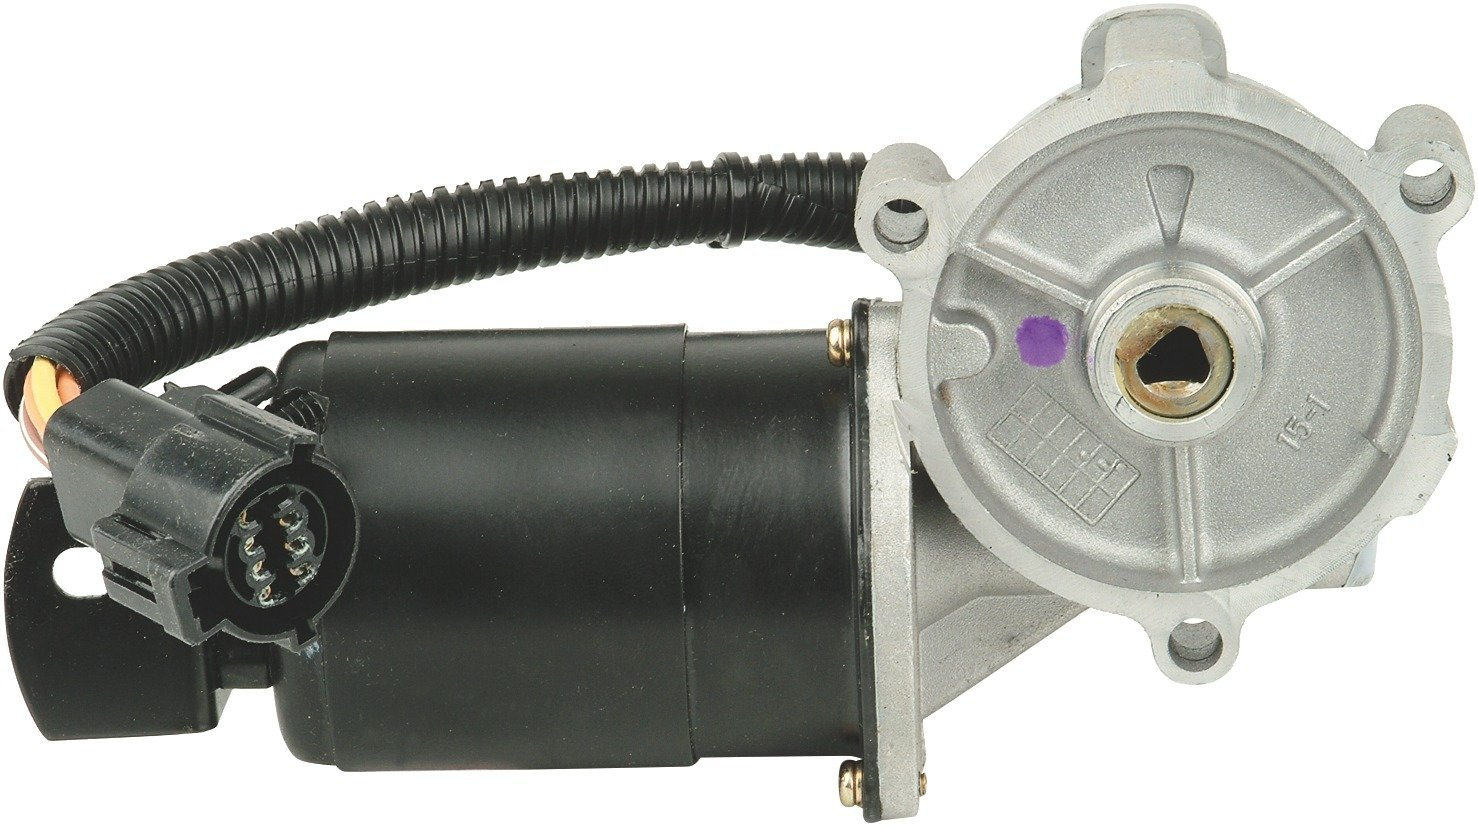 Cardone 48-202 Remanufactured Transfer Case Motor by A1 Cardone